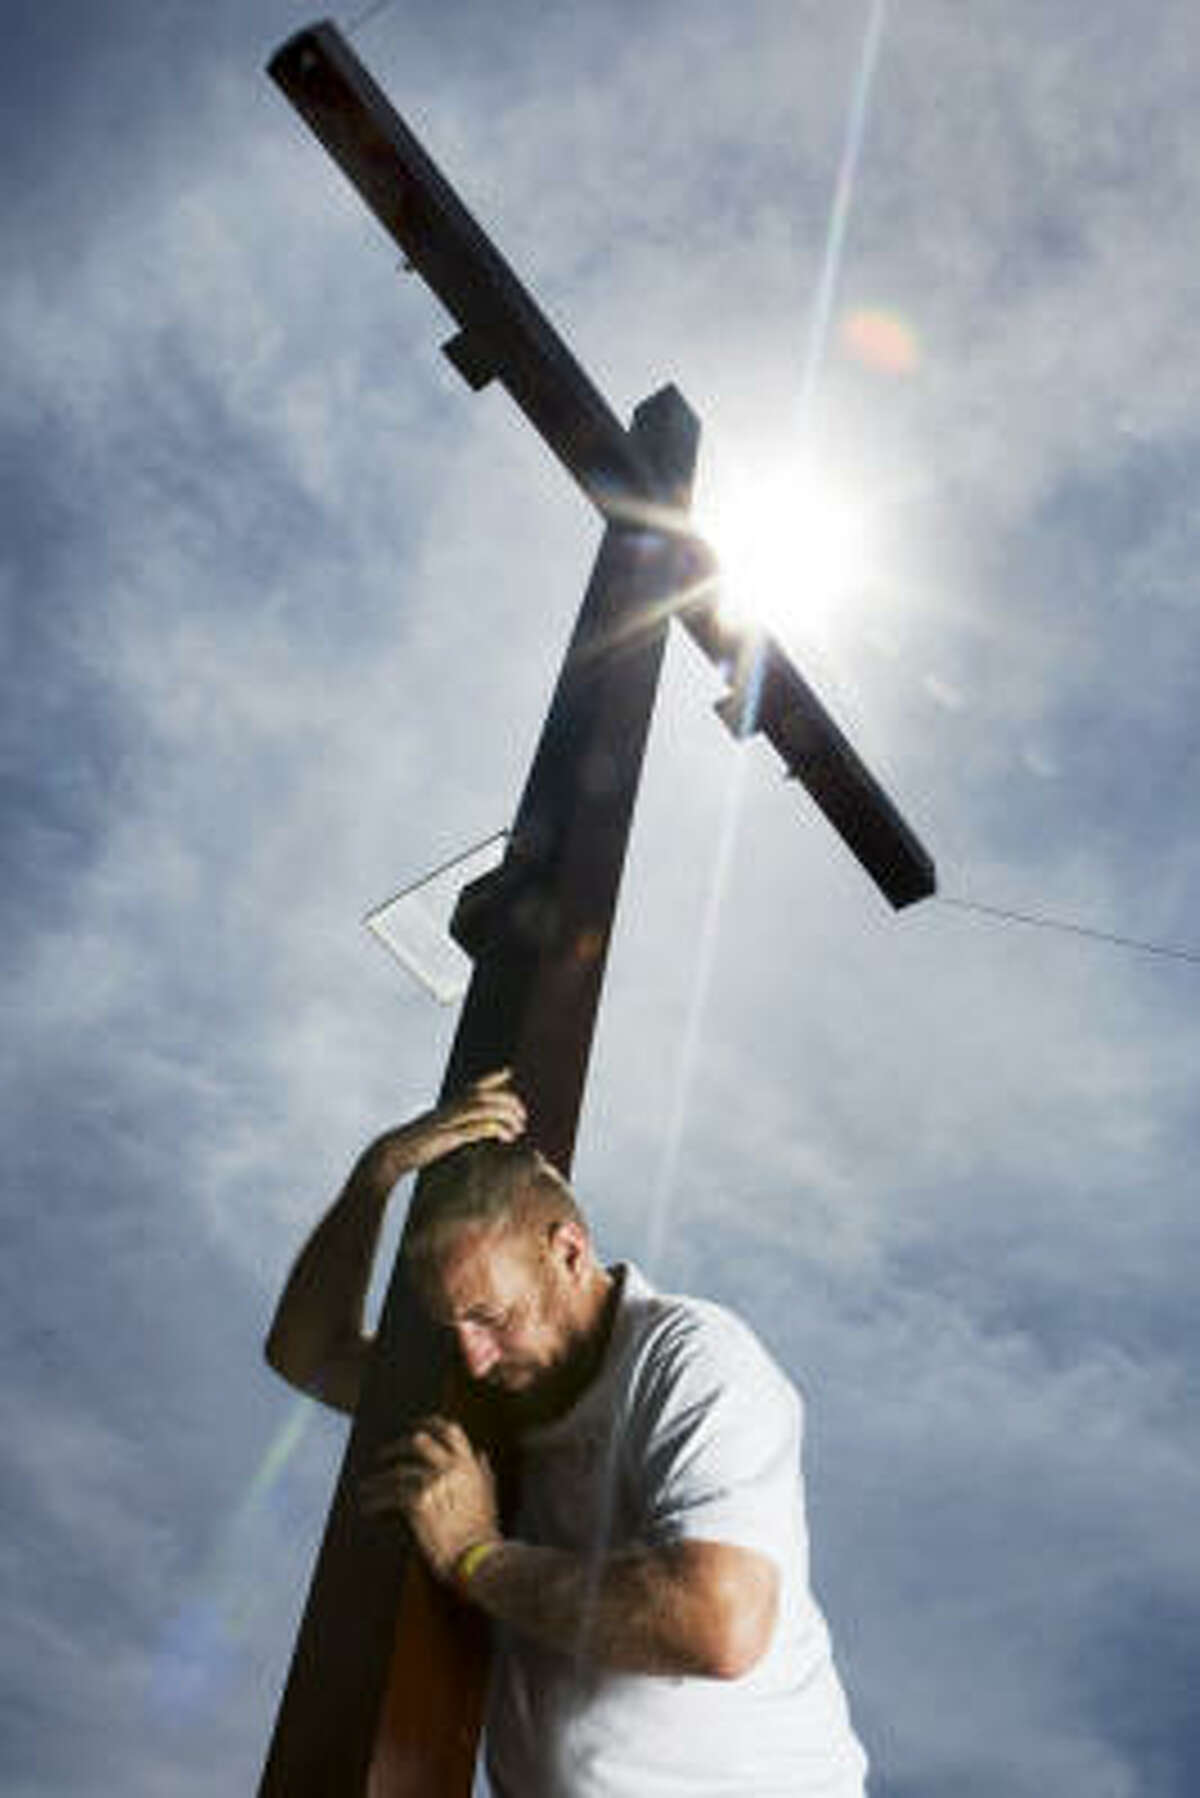 """When I put my Jesus outfit on and go up there (on the cross), it's indescribable,"" said Joe Gaston, who has done his re-enactment of Christ's crucifixion for five years."